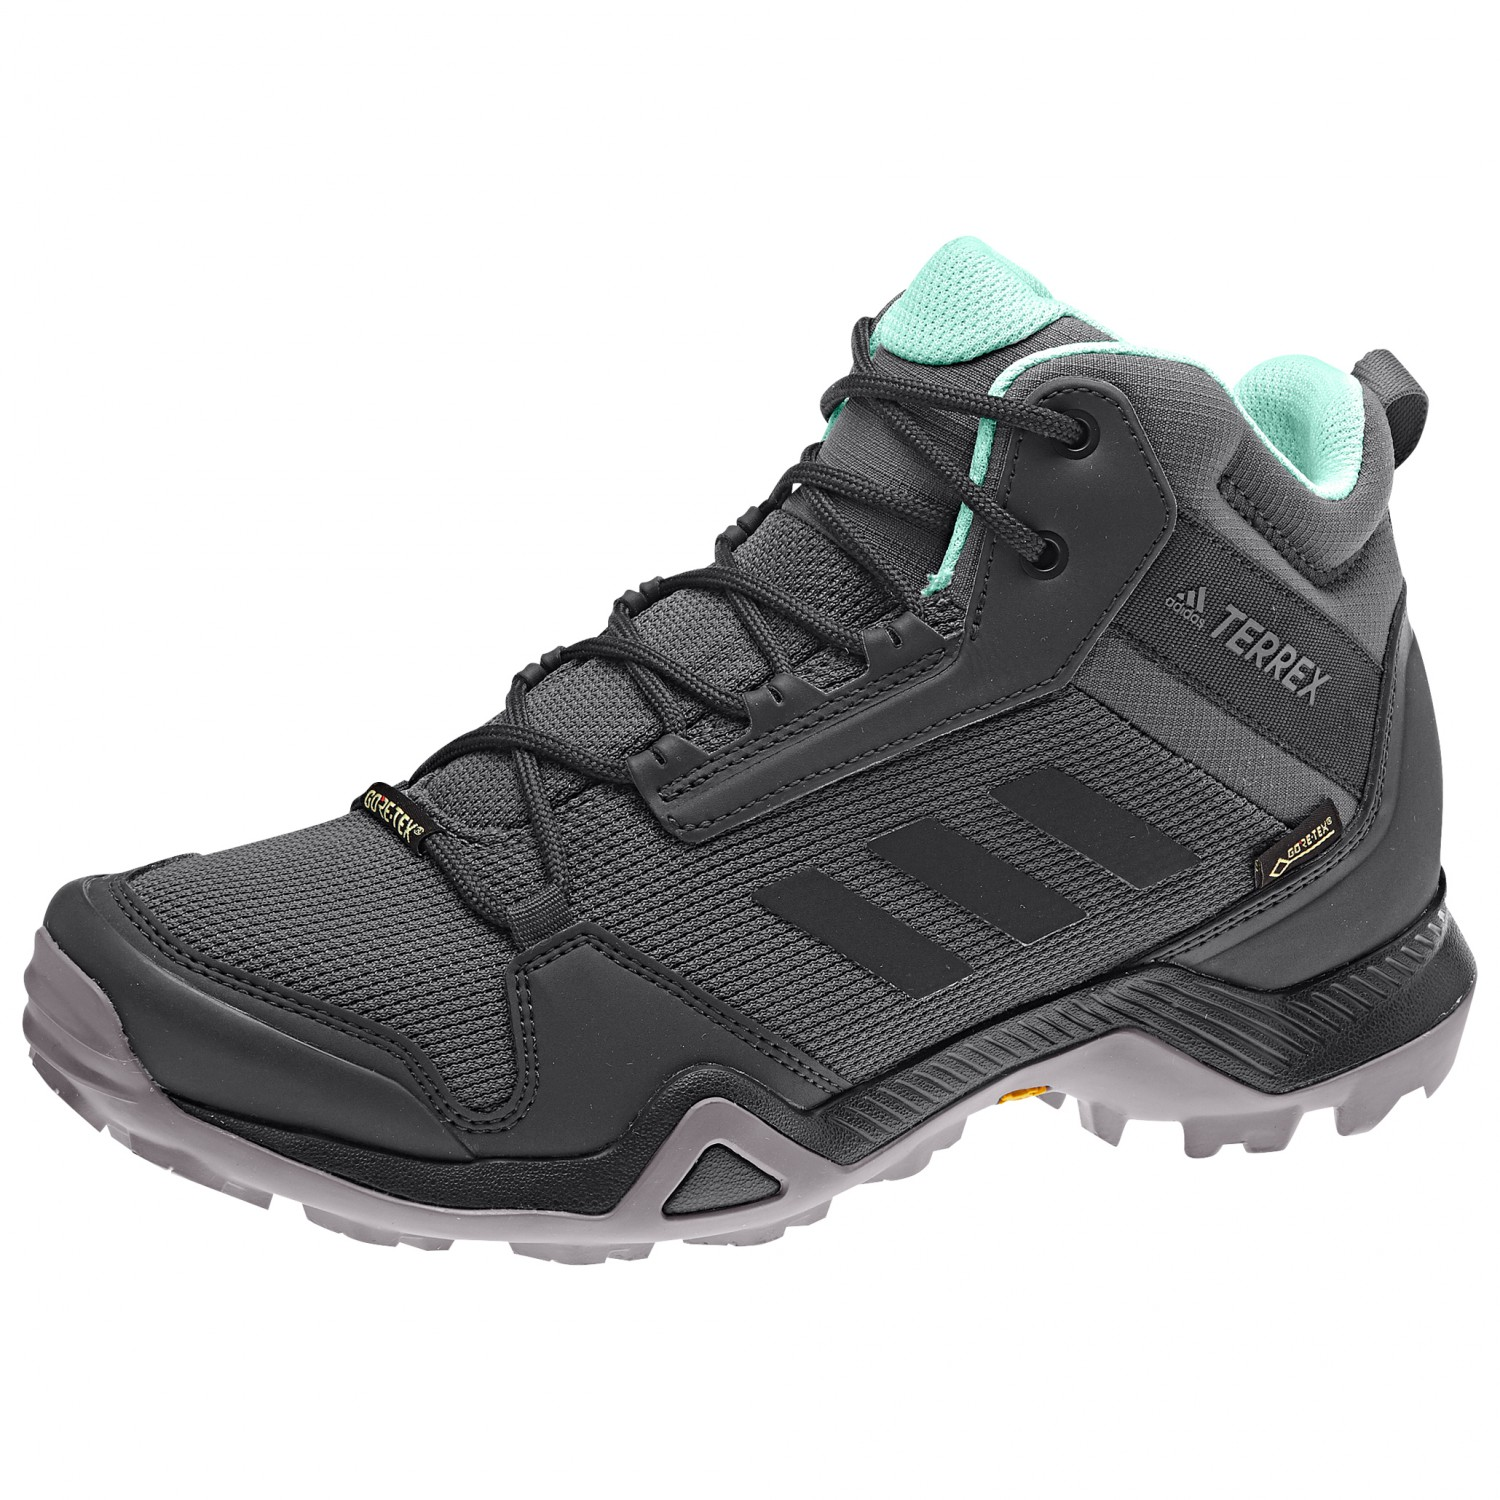 d90cd79714d706 adidas - Women s Terrex AX3 Mid GTX - Walking boots ...